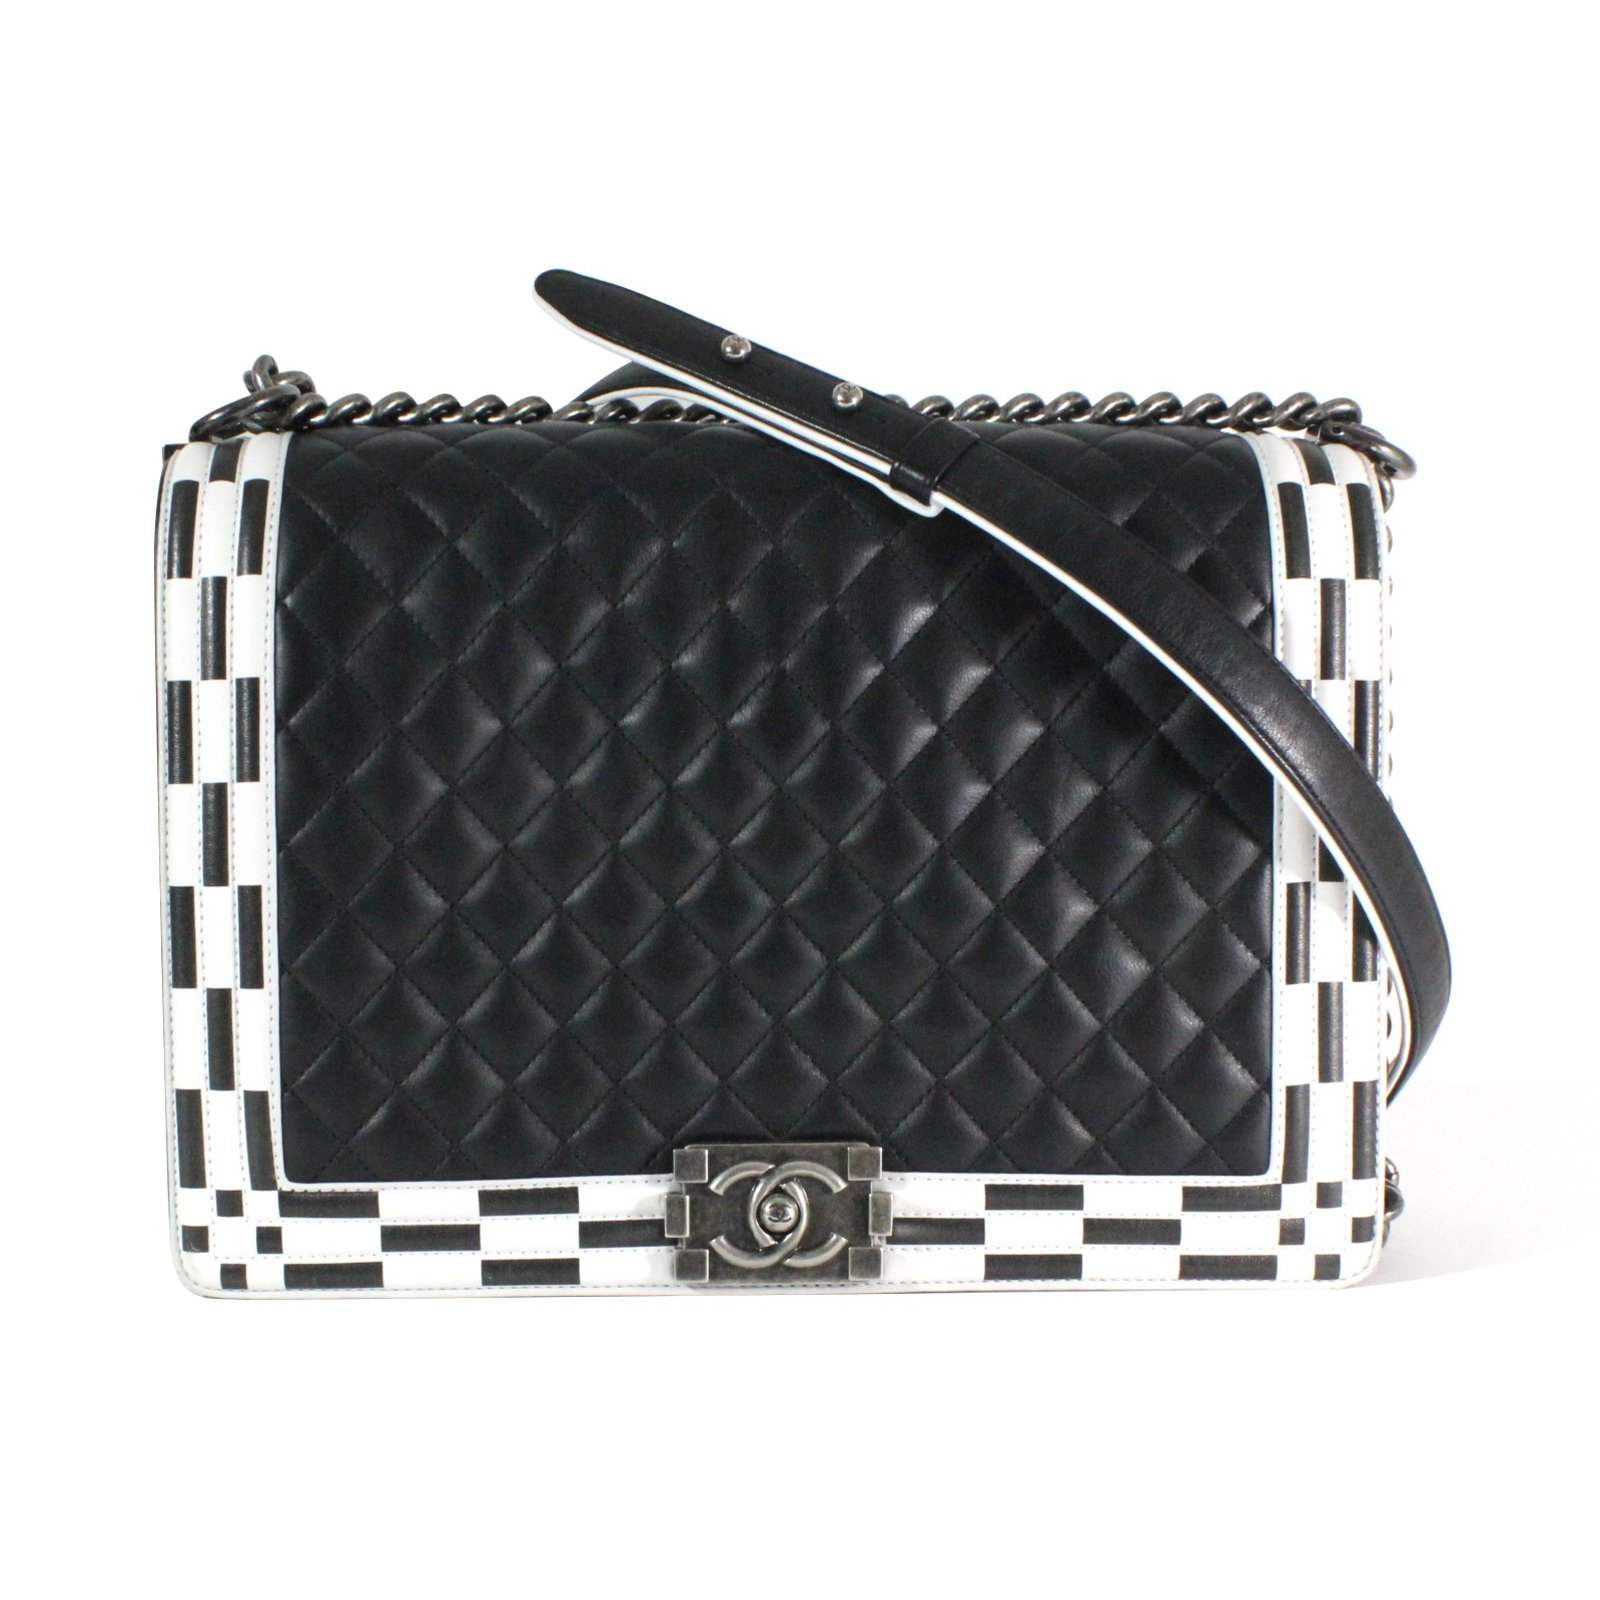 96fb775b20fc Chanel Boy Handbags Leather Black,White ref.54786 - Joli Closet